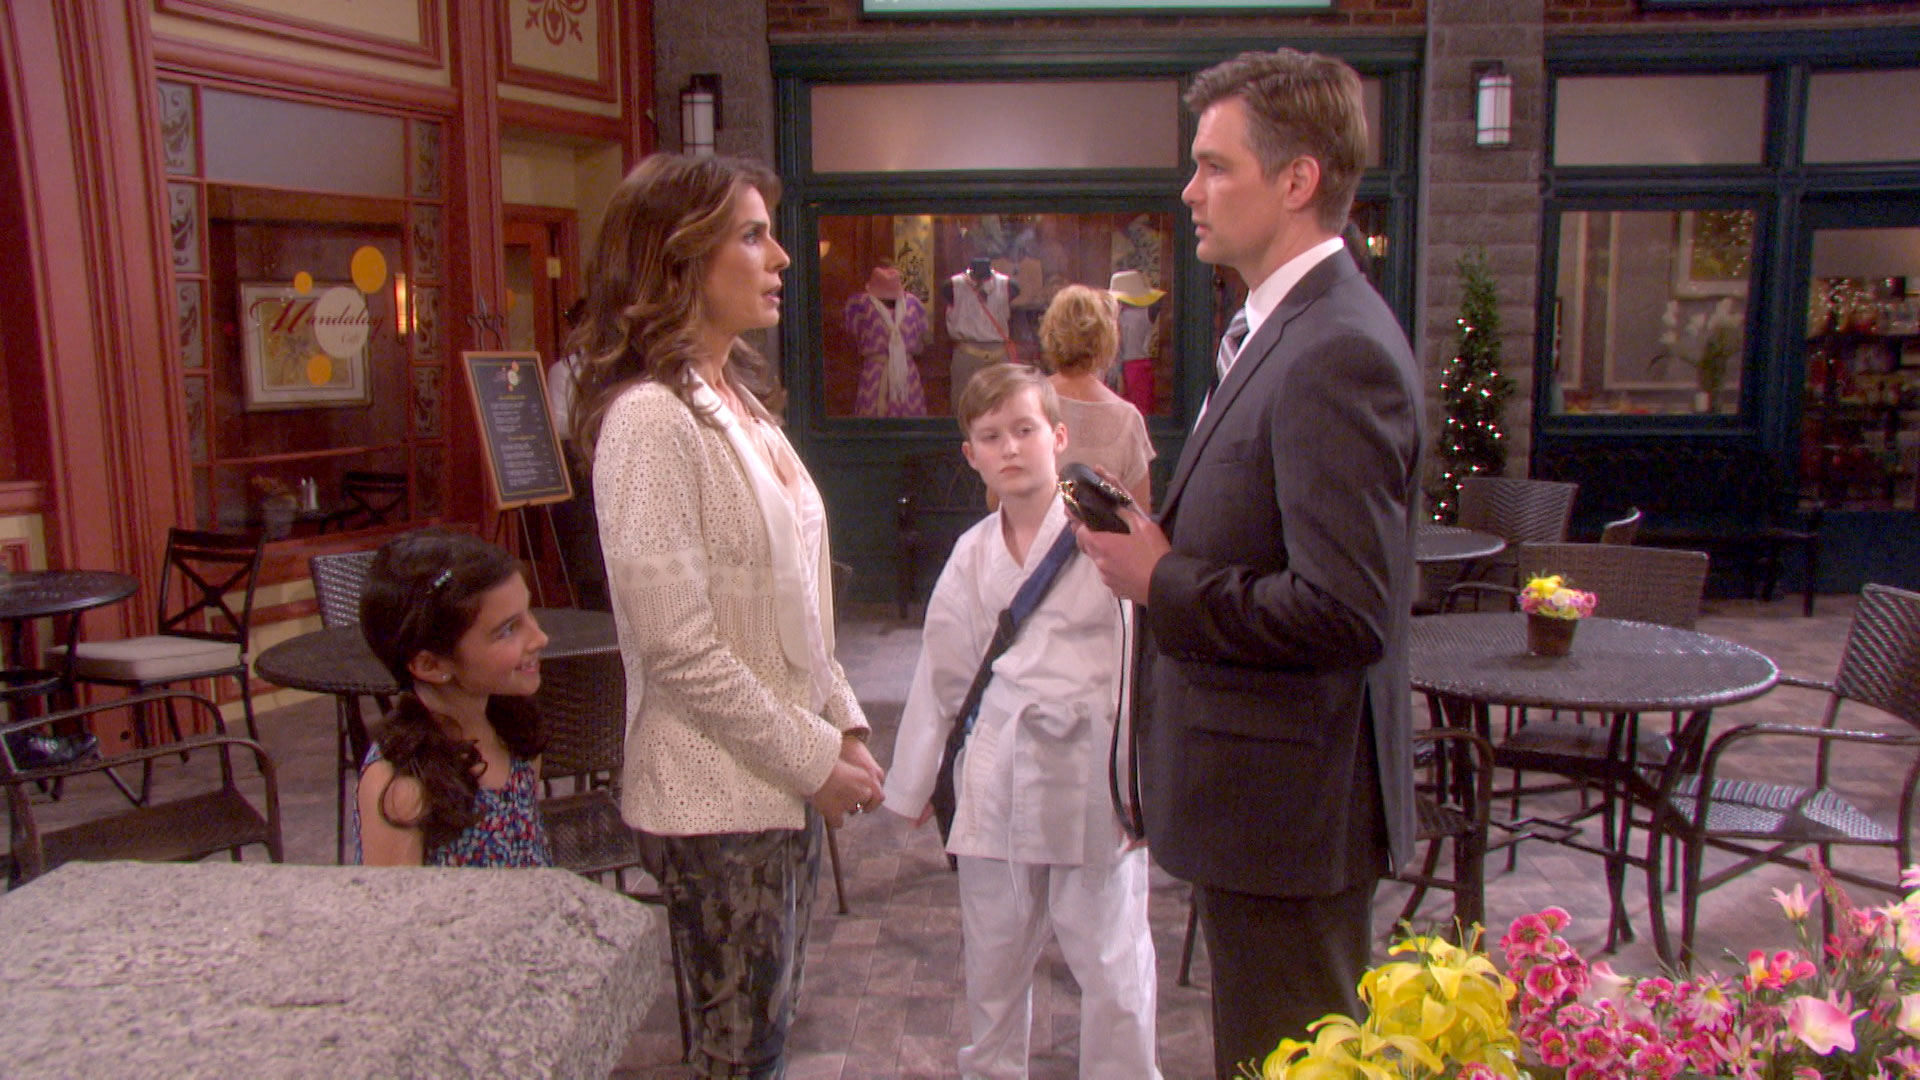 Hope is horrified when Ciara invites Aiden and Chase to join them on vacation.